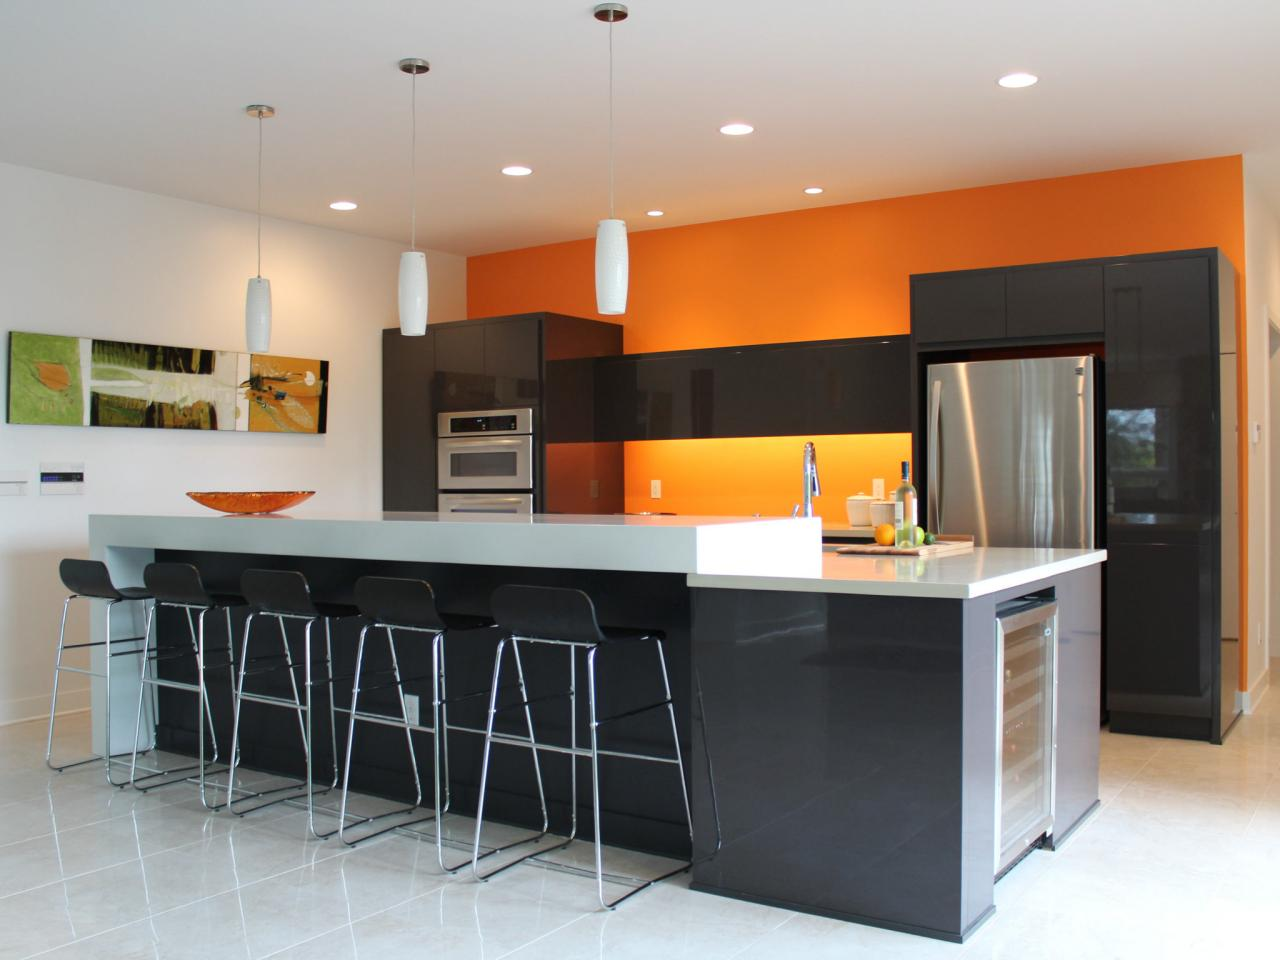 Adorable White Orange Color Kitchen Paint Idea With Wall Palette And Large  Island And Black Stools